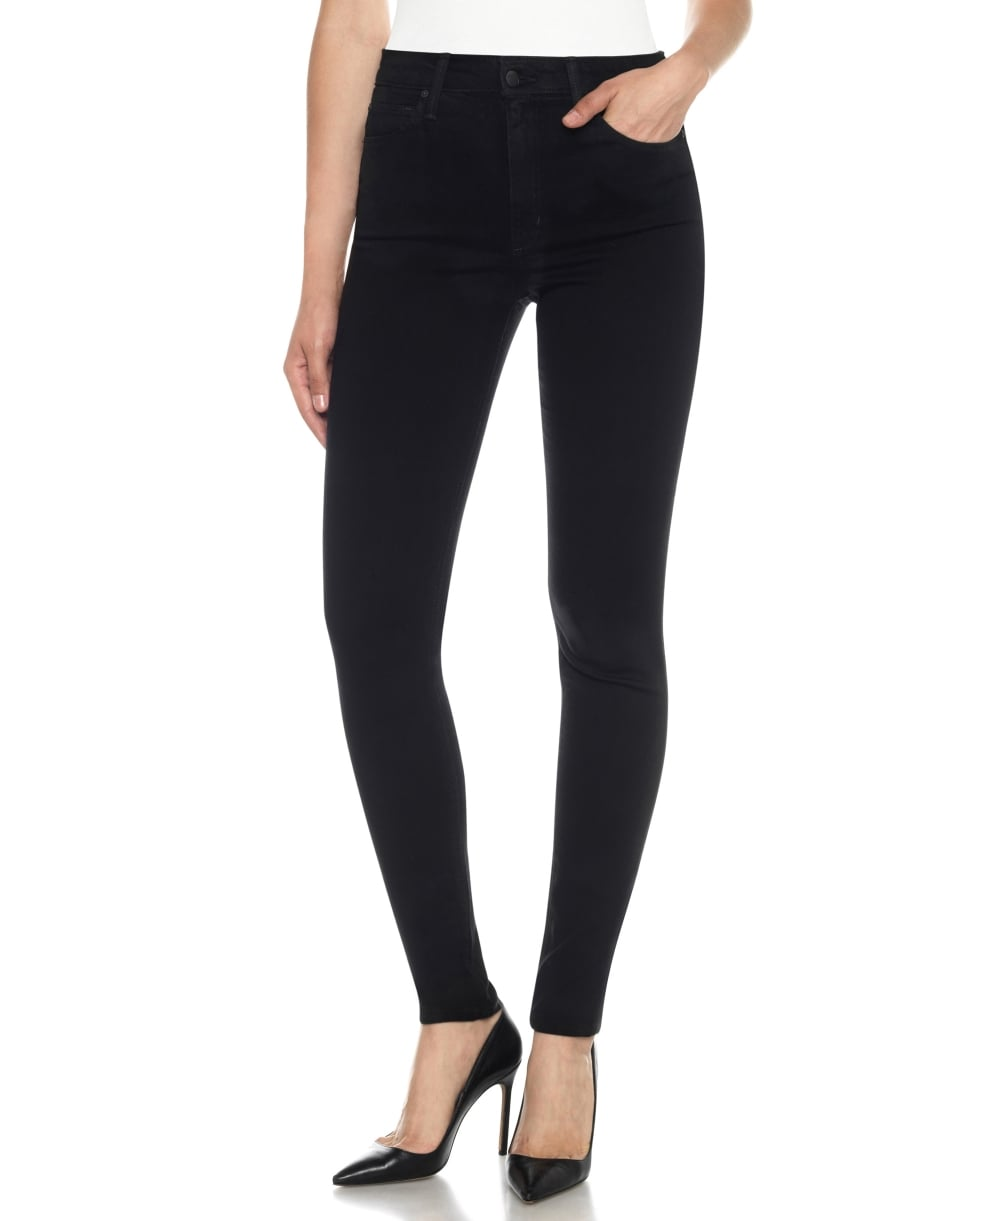 6083d5fdb2d5 JOE s Jeans The Charlie High Rise Skinny Jean - Jeans from luxury ...